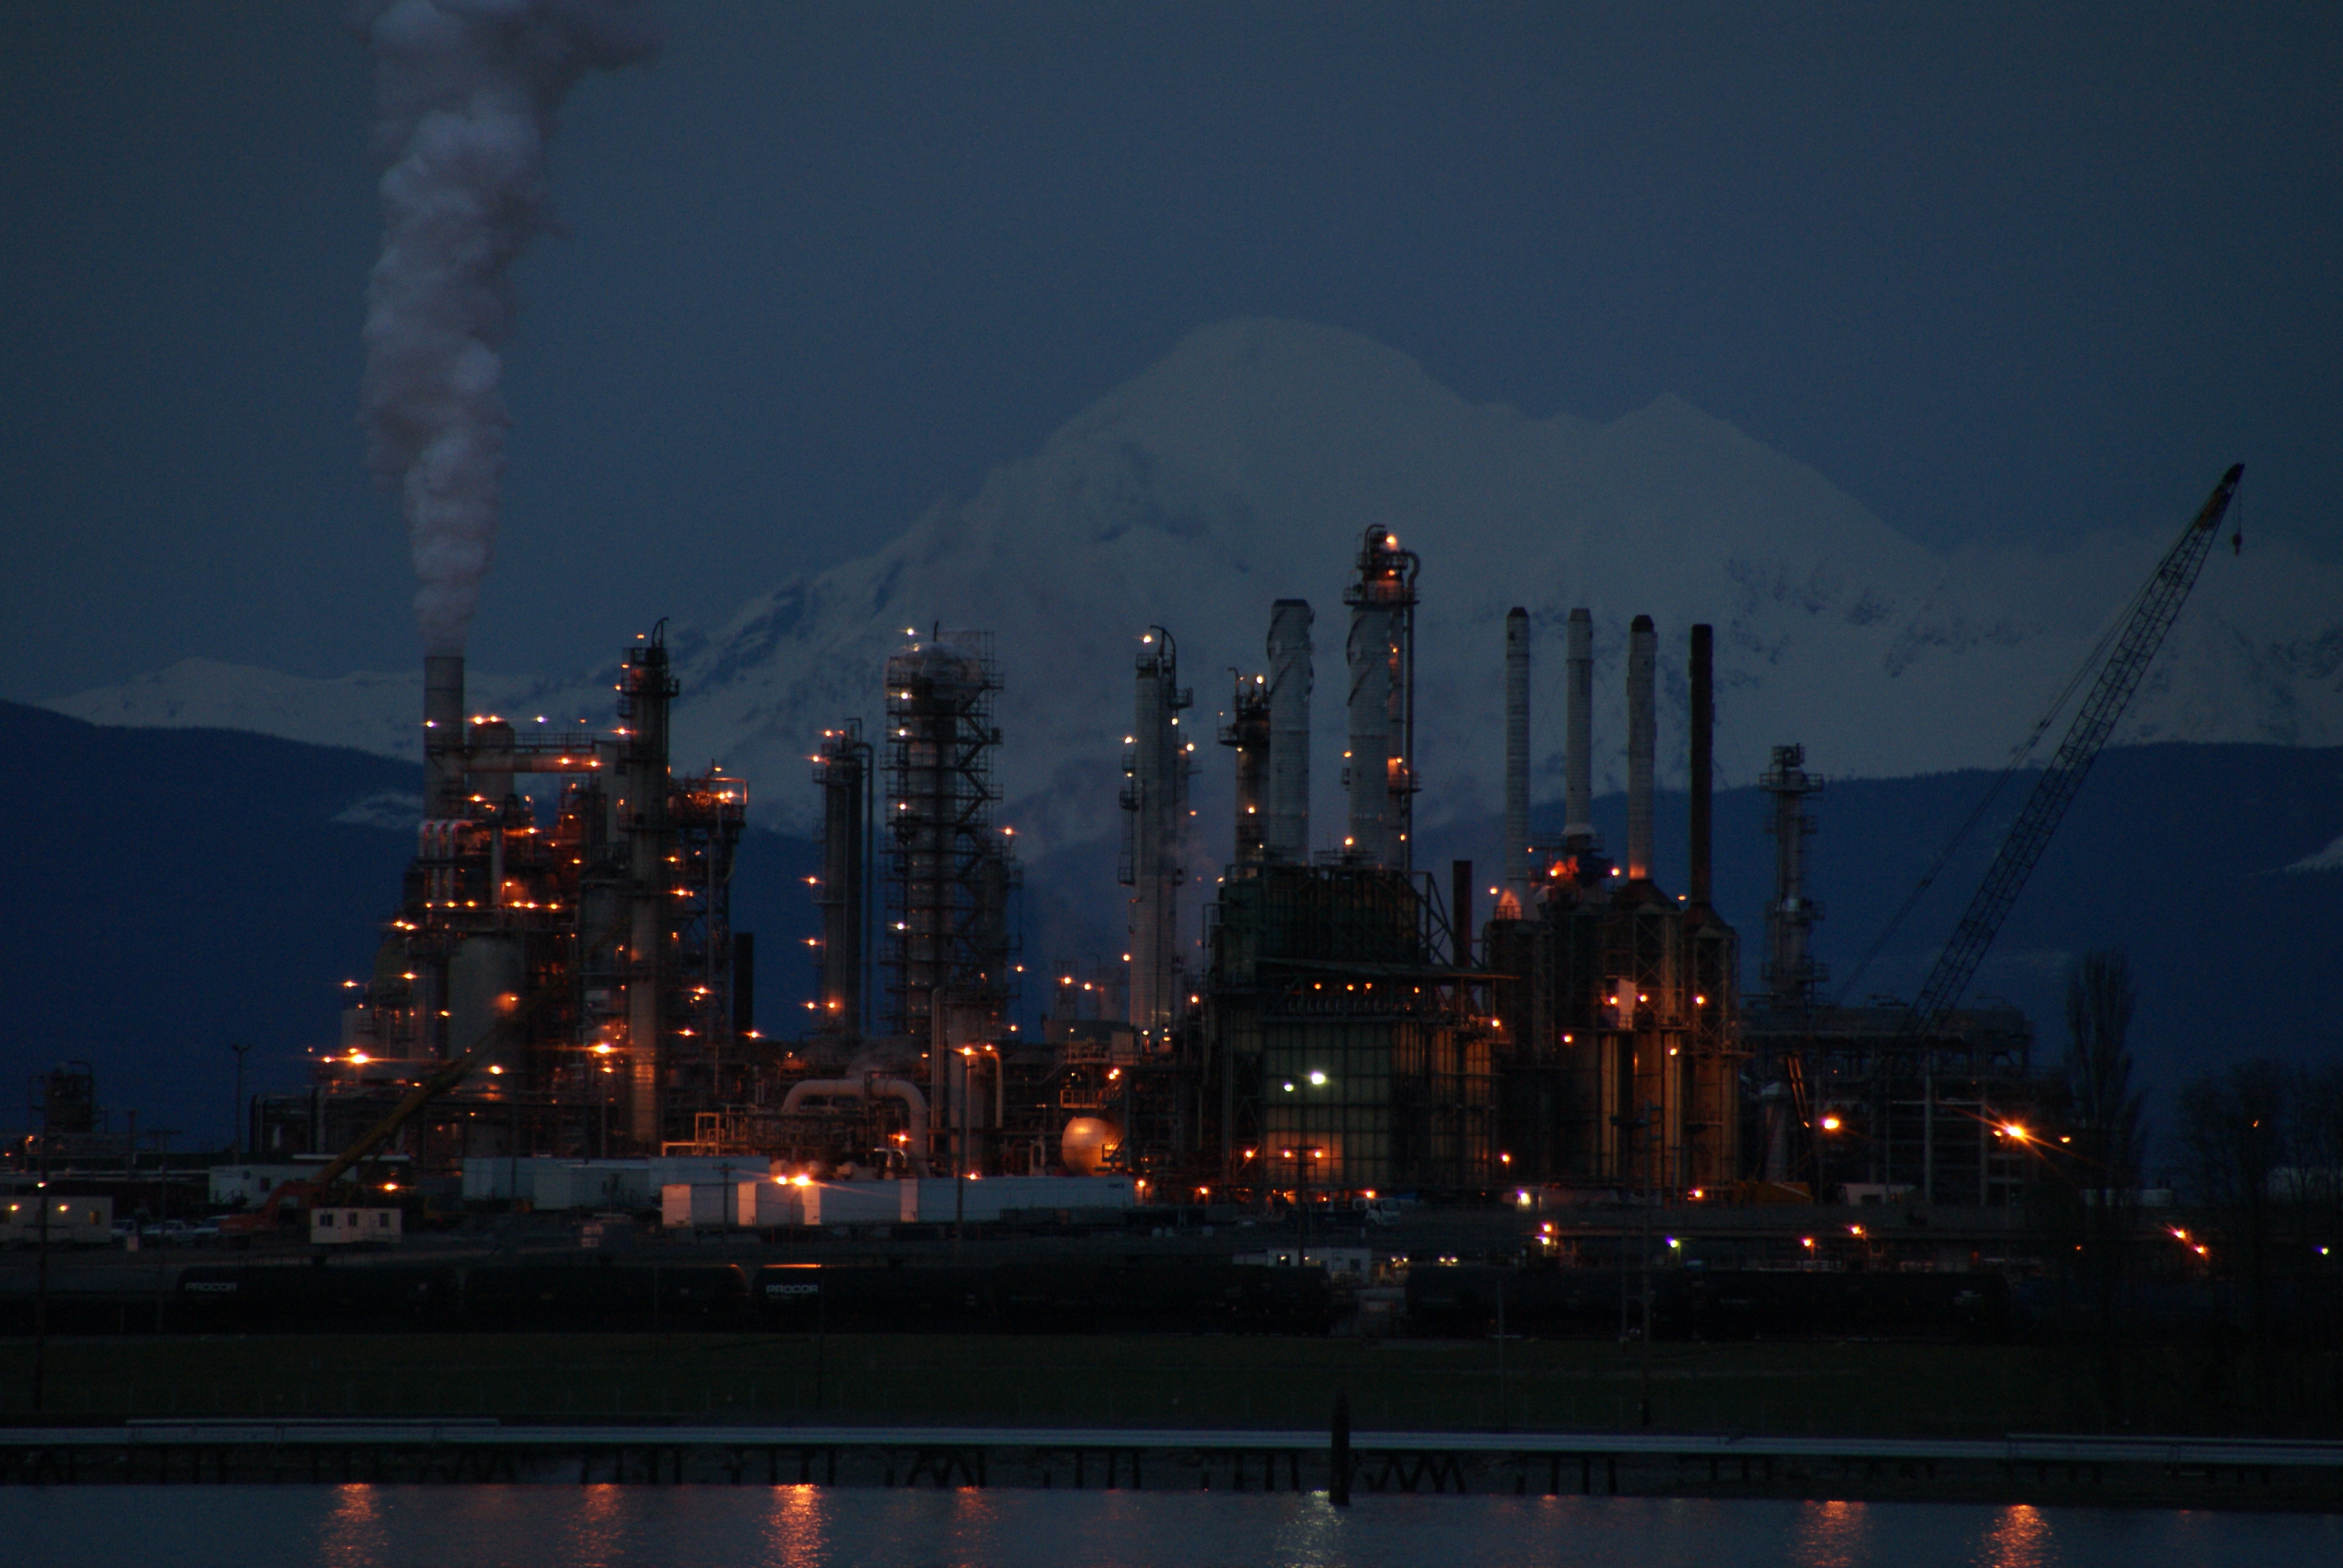 anacortes oil refinery